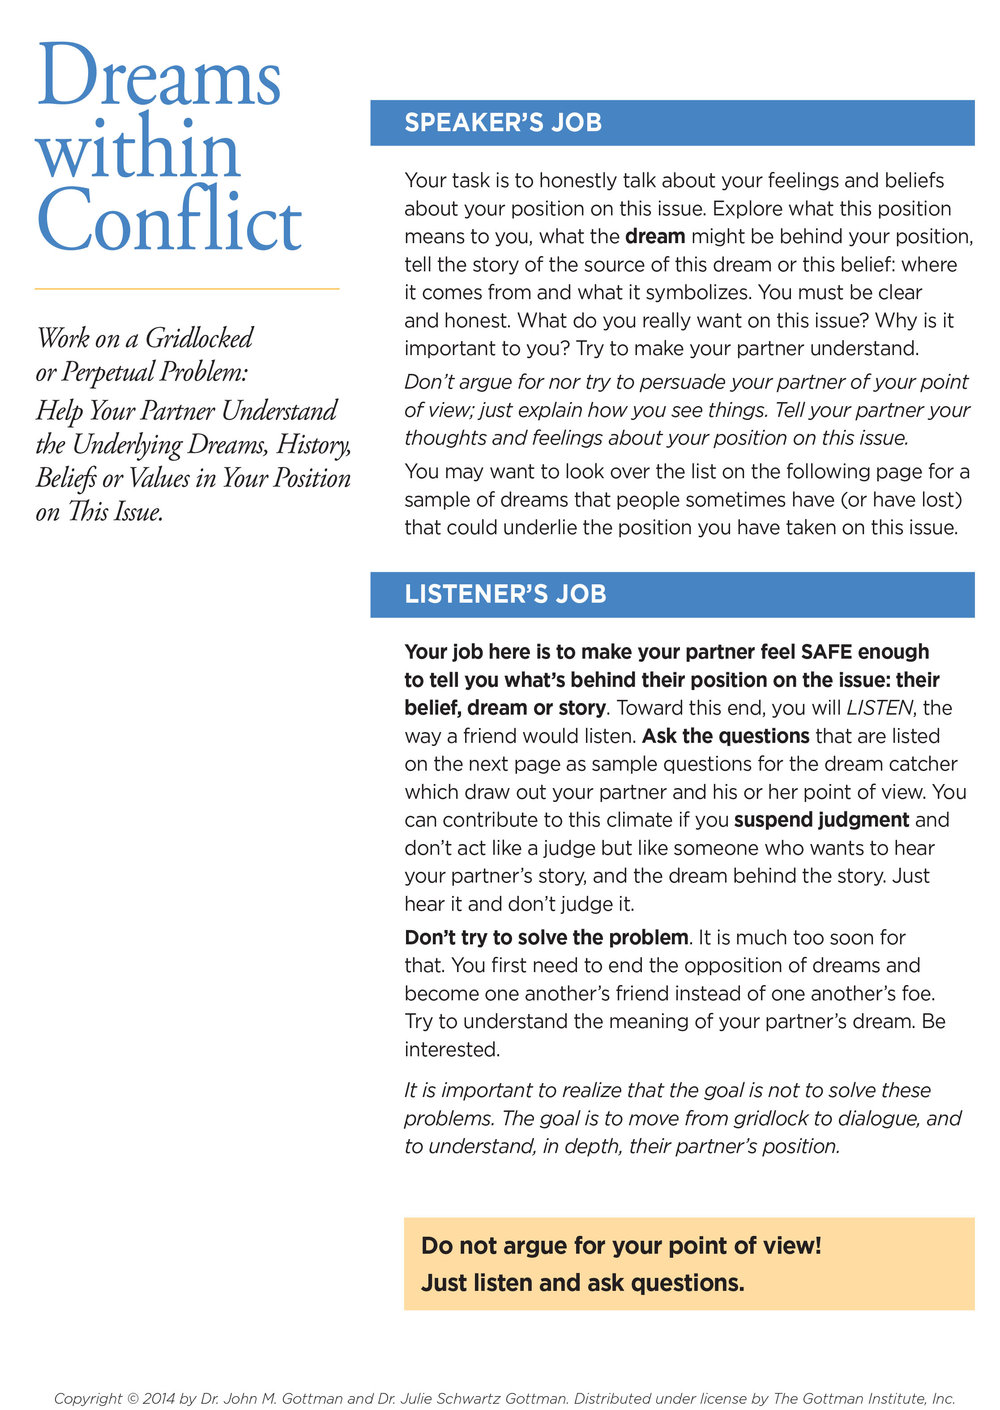 Dreams within Conflict - Use this tool when you are addressing Gridlock on a Perpetual Problem. Seek to understand underlying dreams, history, beliefs or values. Click on image for PDF.